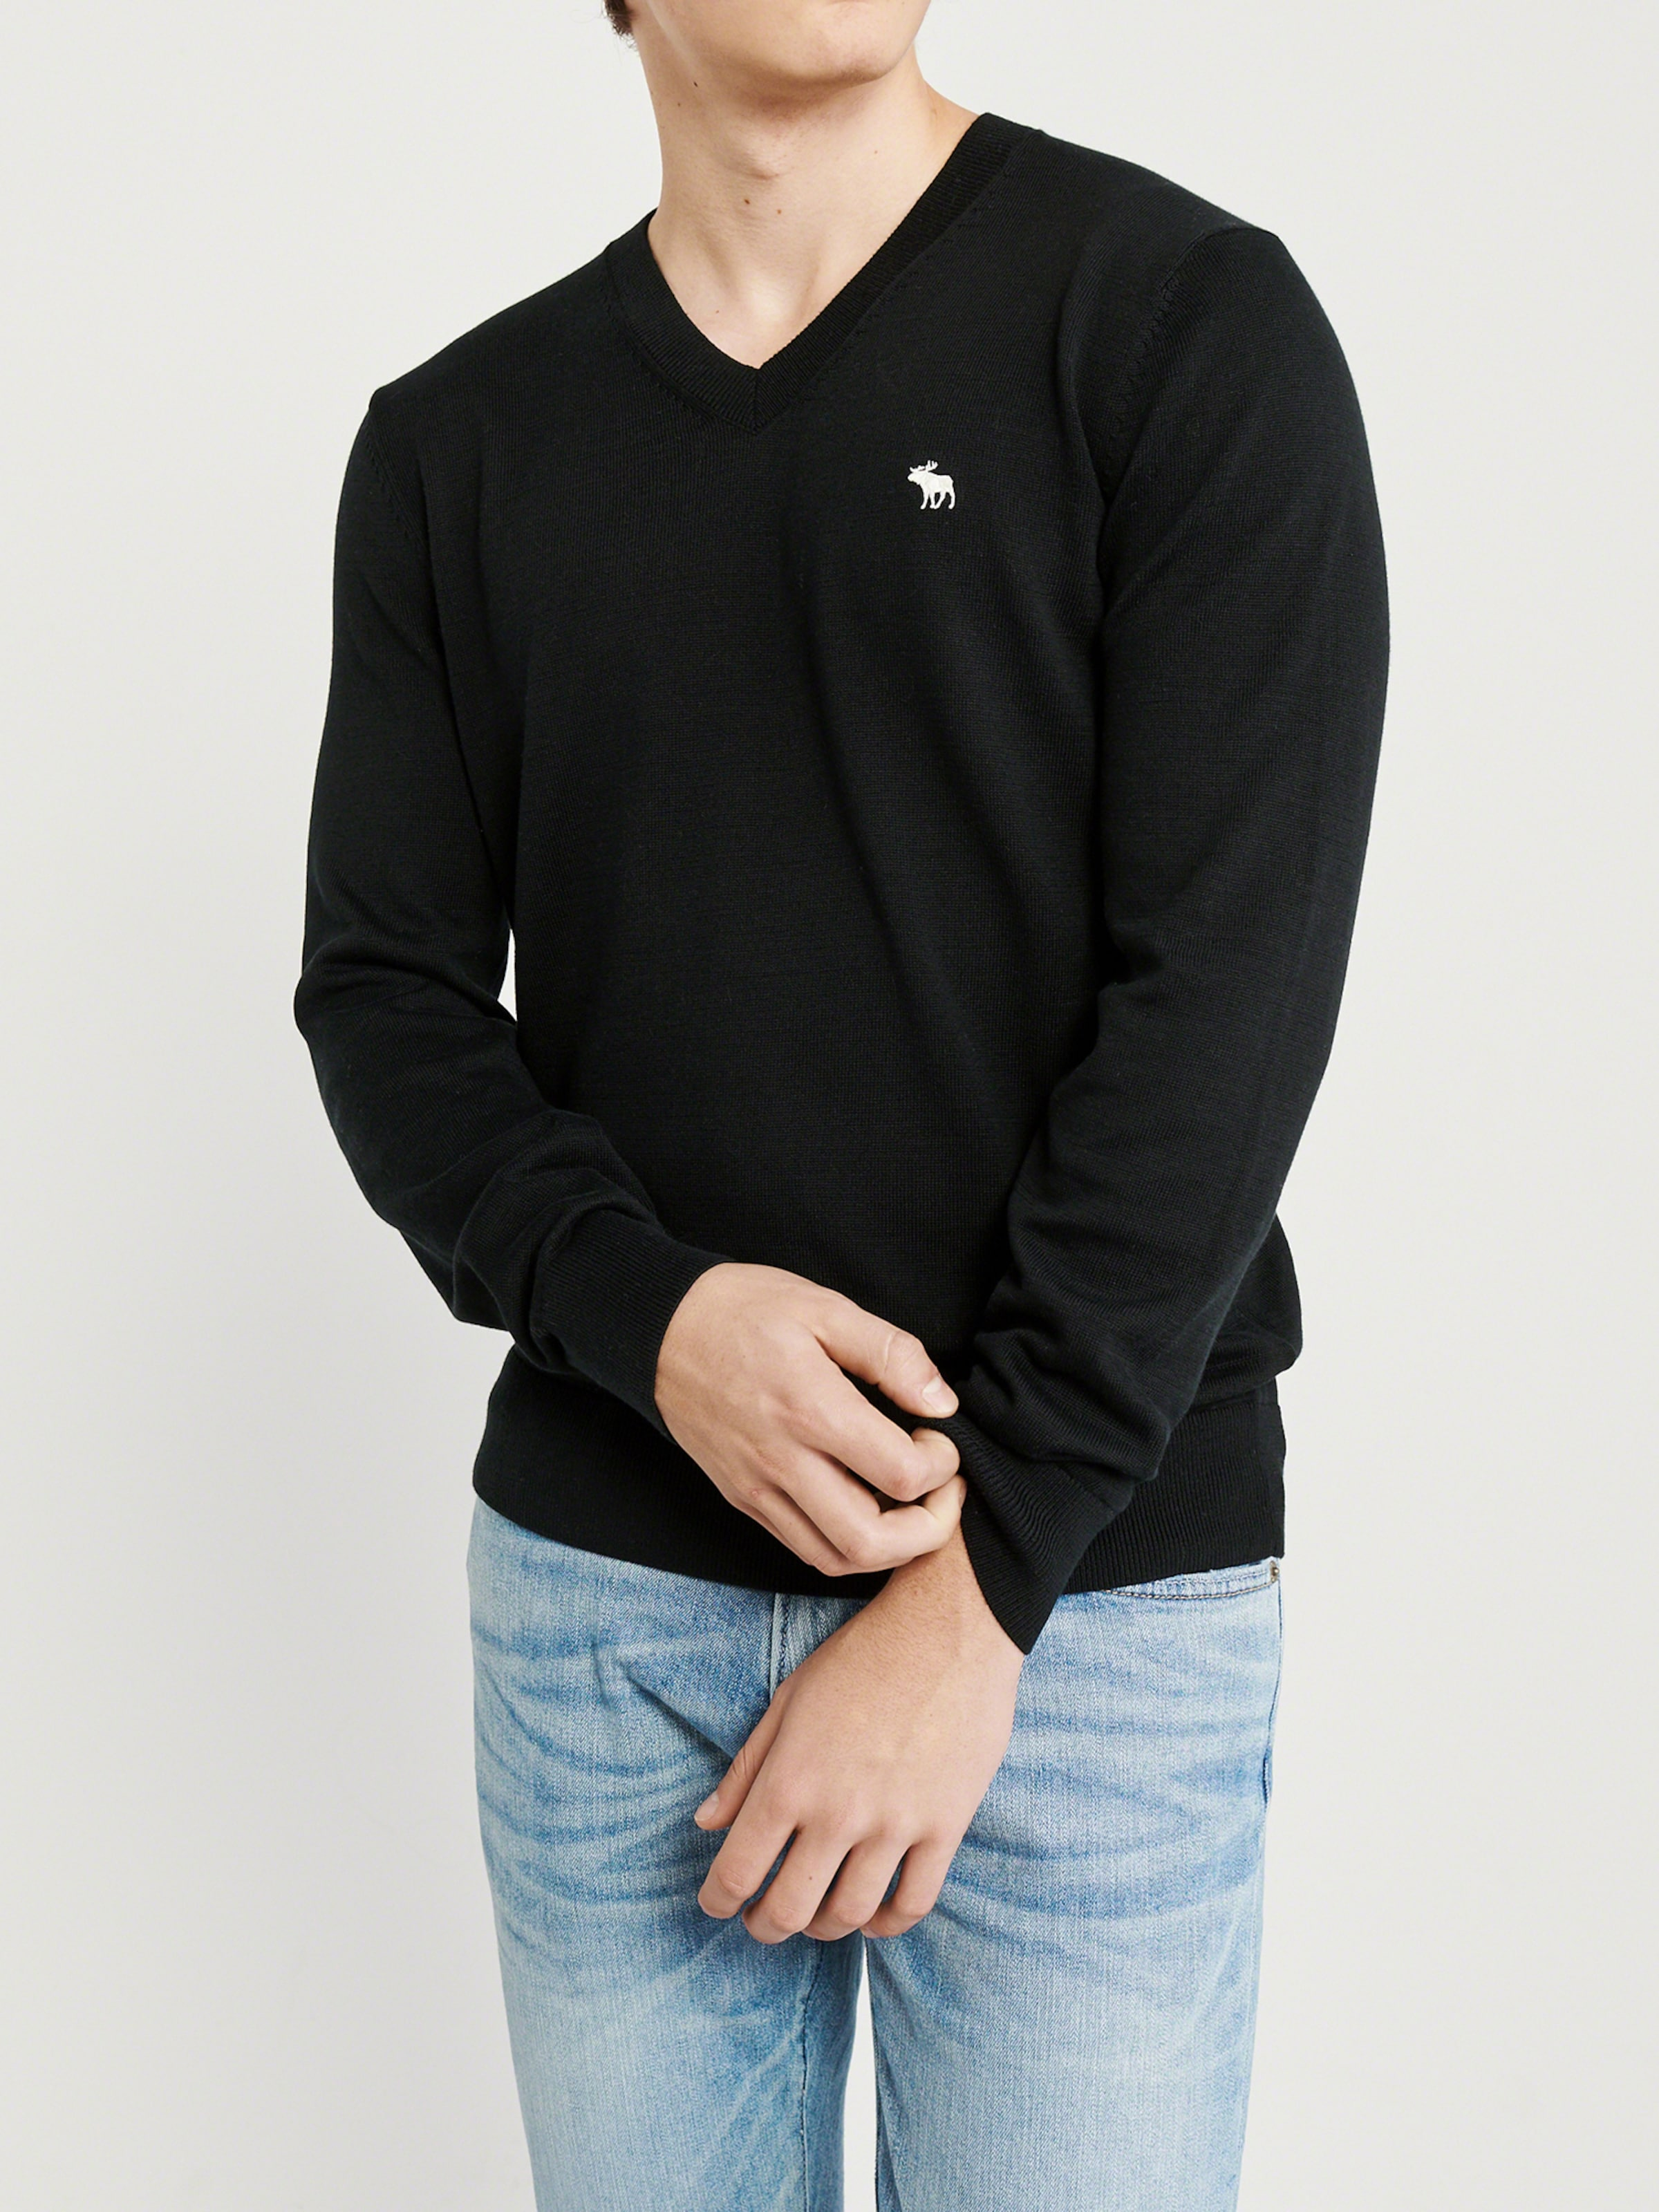 Abercrombieamp; Abercrombieamp; Fitch Pullover Schwarz In Fitch EHDI29